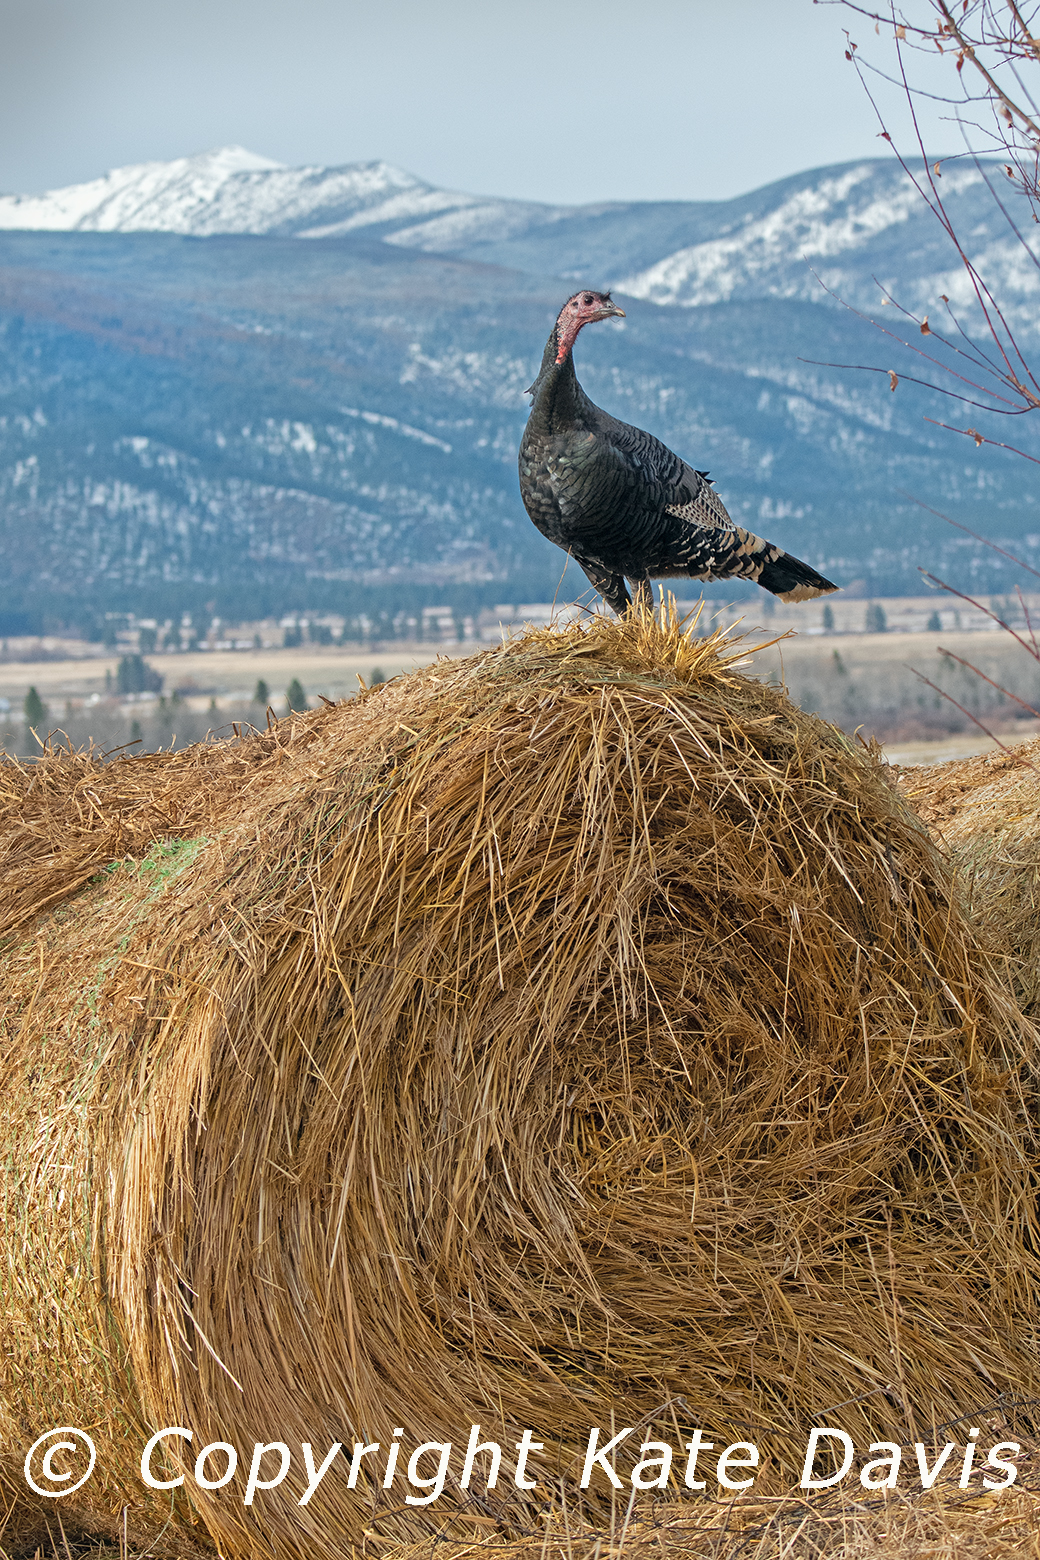 Turkey In the Straw (Hay actually)